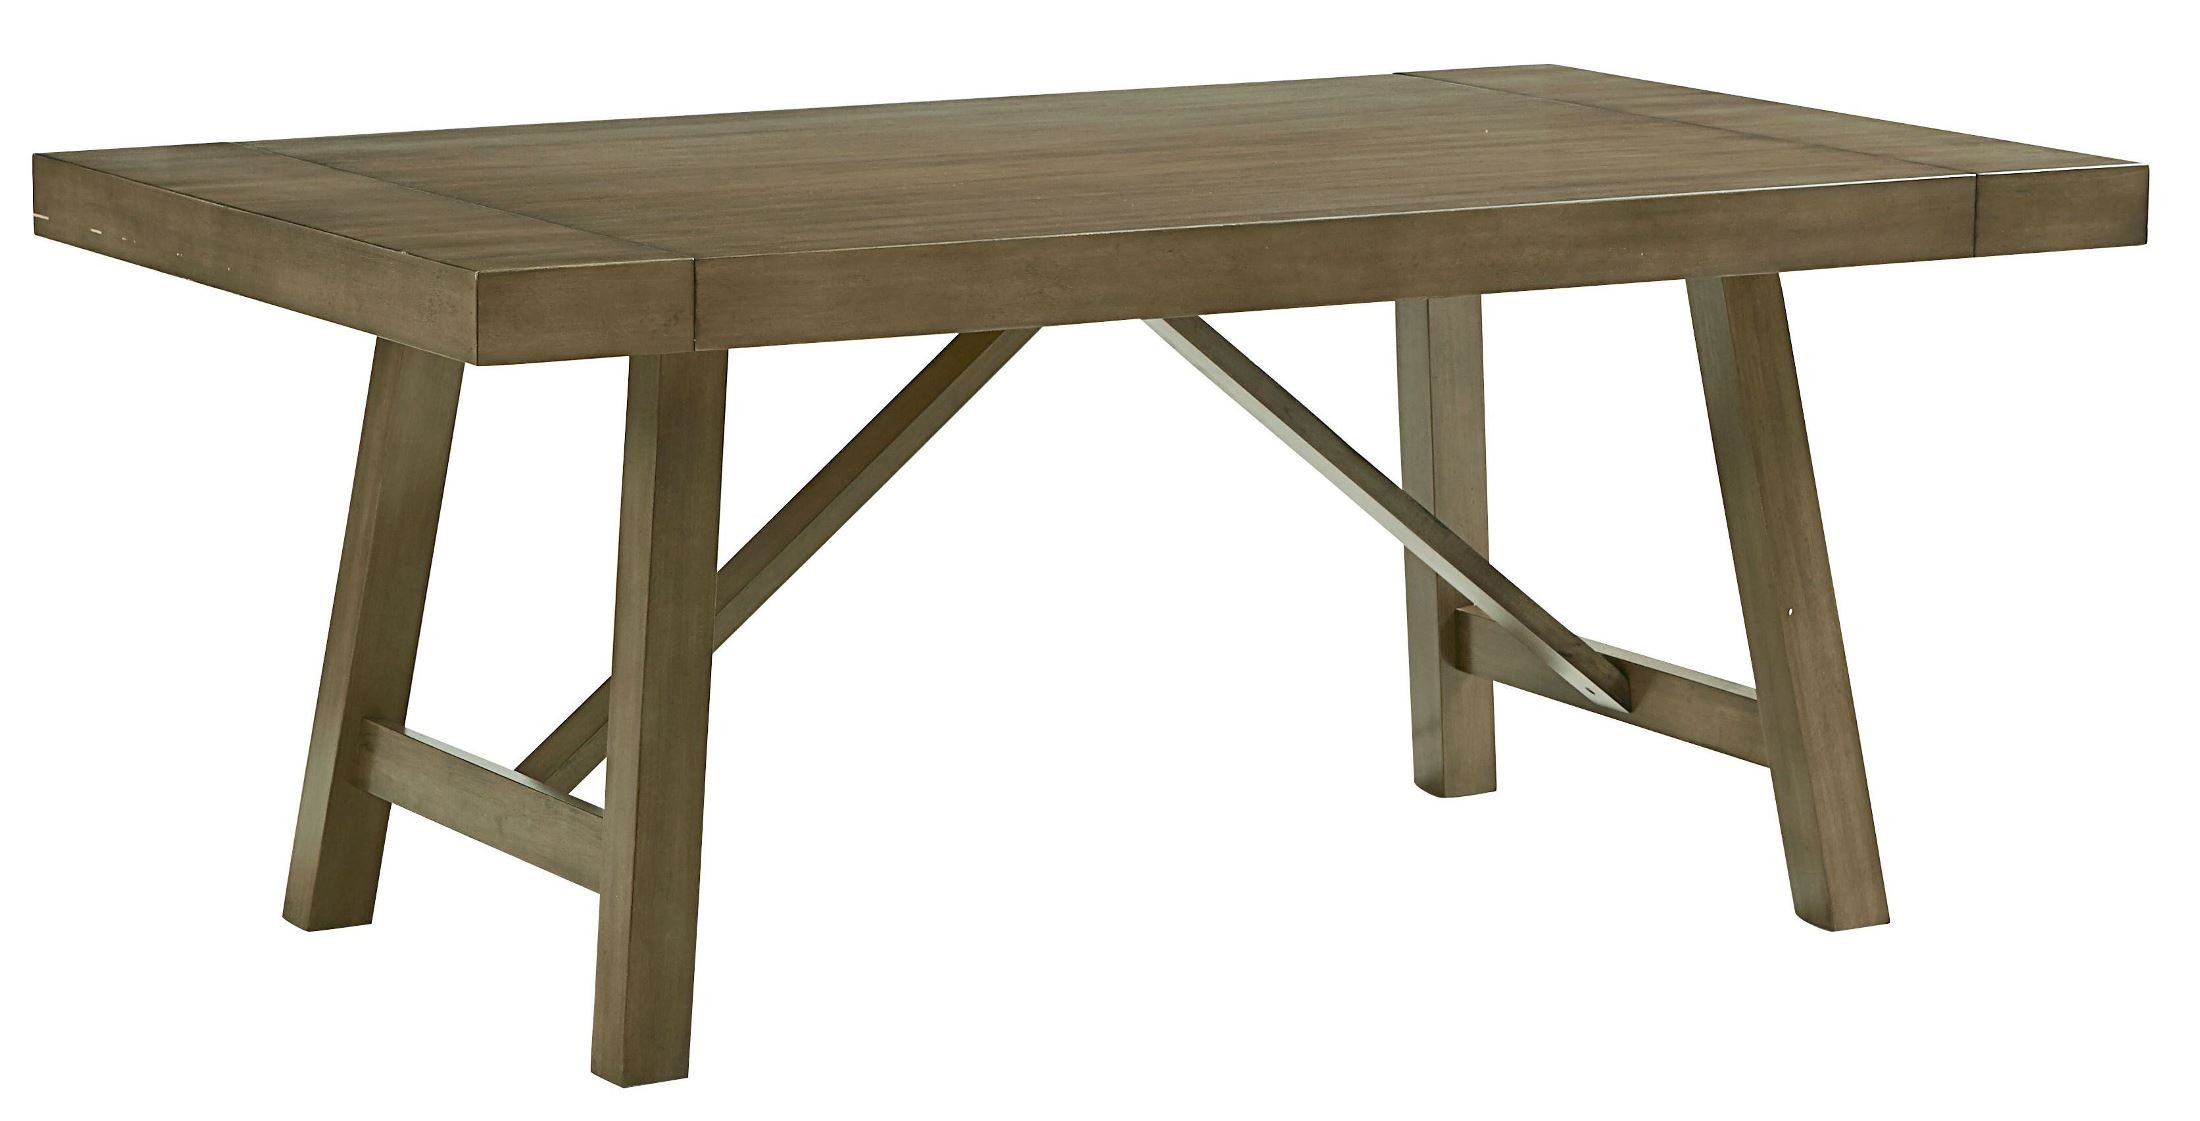 Omaha Weathered Burnished Grey Extendable Trestle Dining  : 16680omahagrey16681tblsilo from colemanfurniture.com size 2200 x 1121 jpeg 169kB